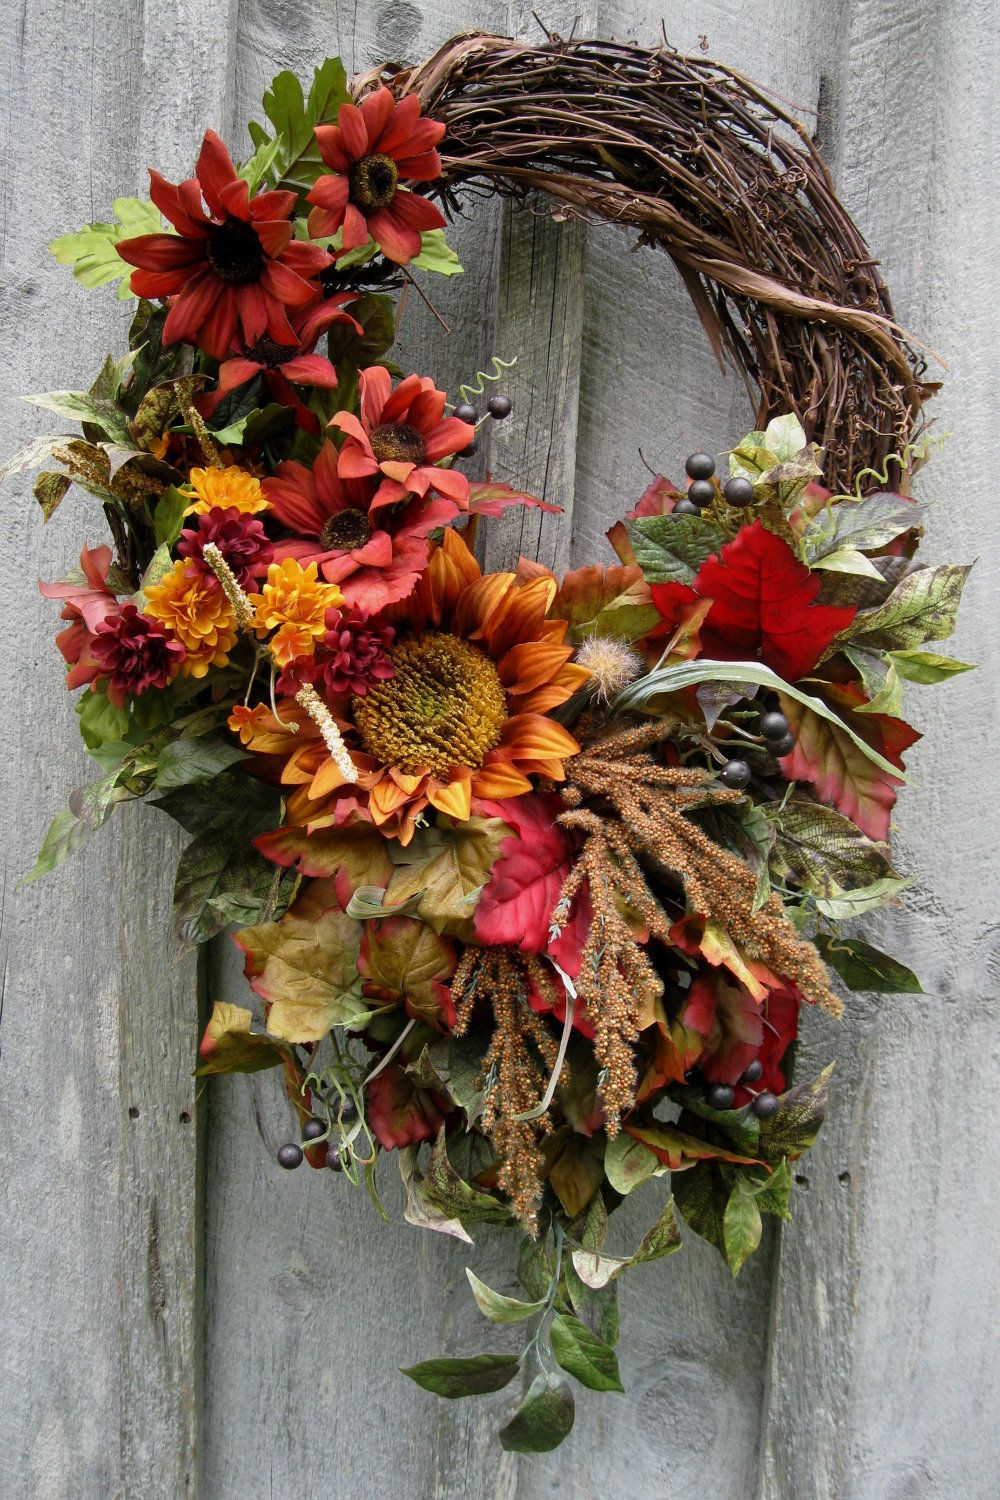 Autumn Wreath, Fall Floral, Designer Wreaths, Sunflowers, Tuscany ...